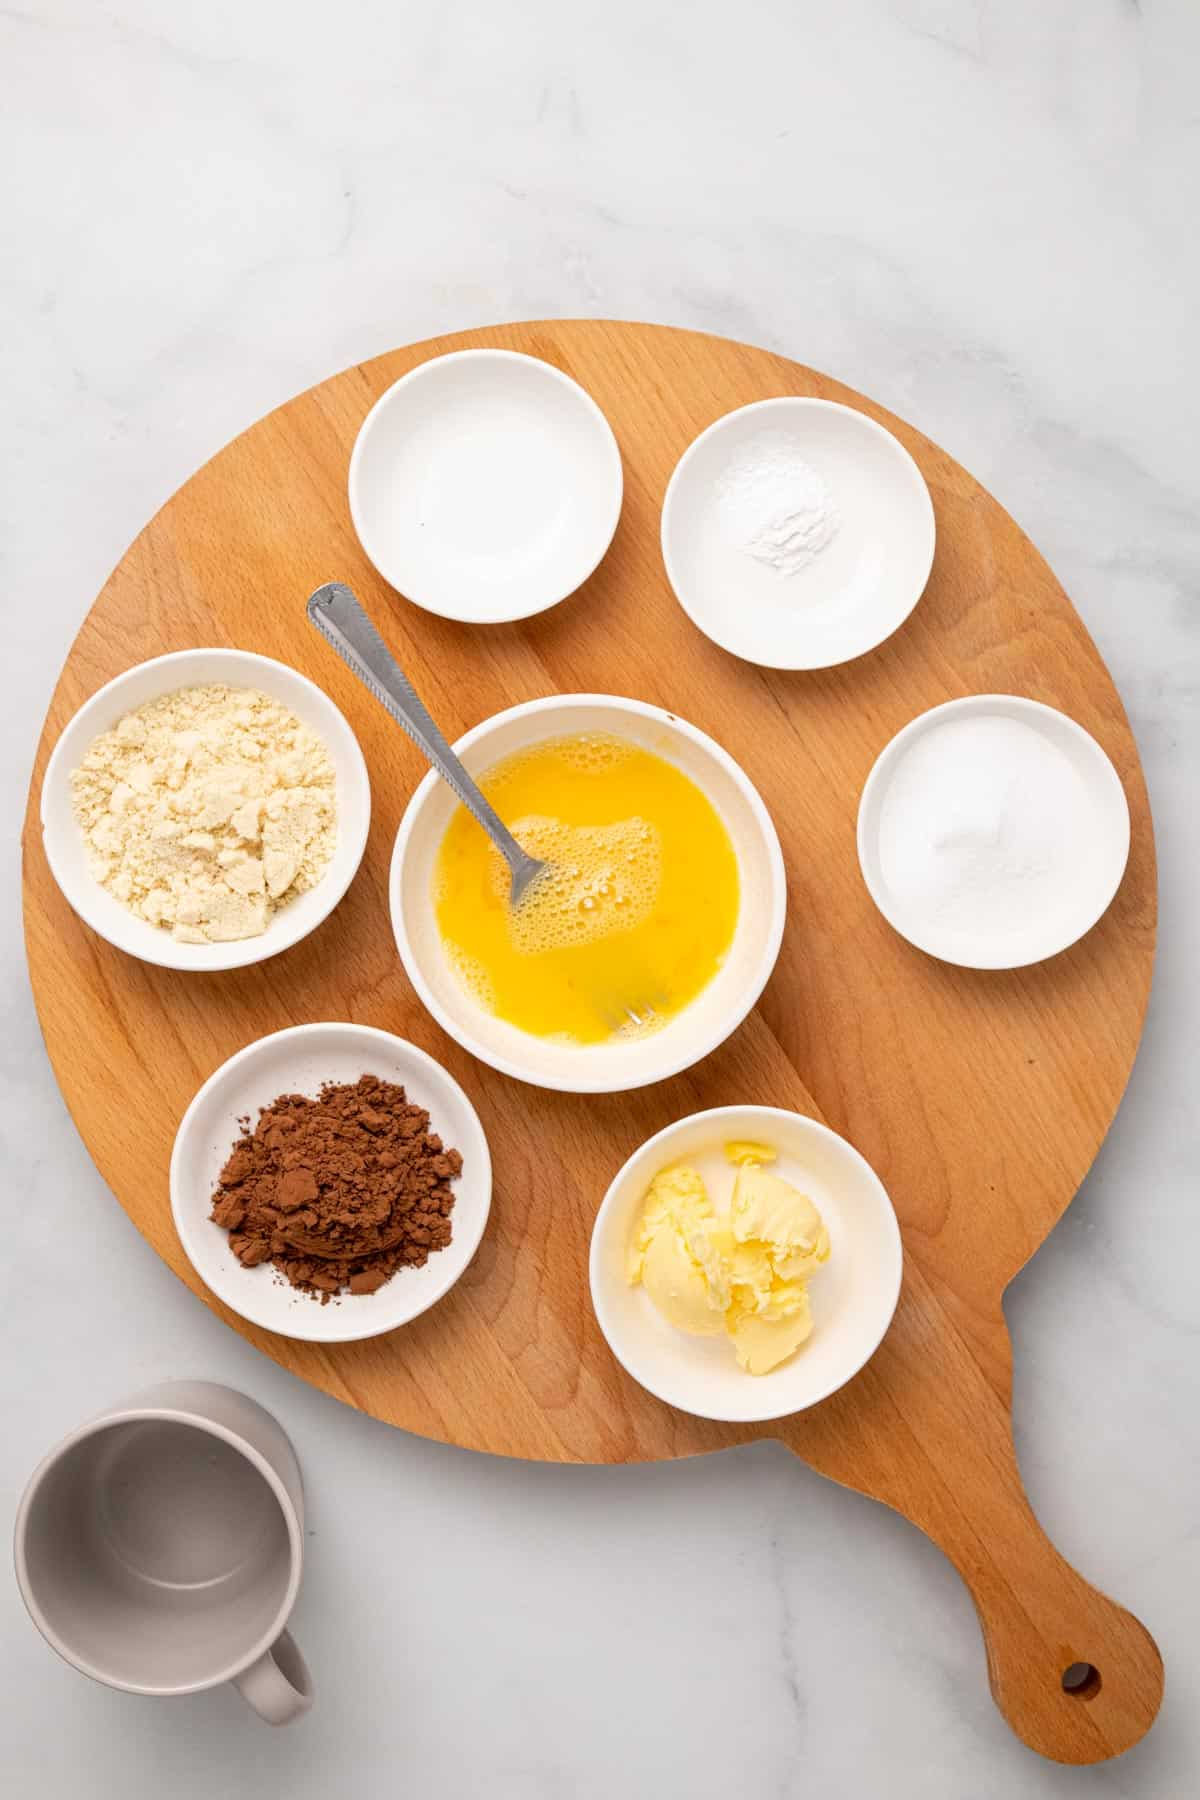 ingredients for the cake on a wooden board